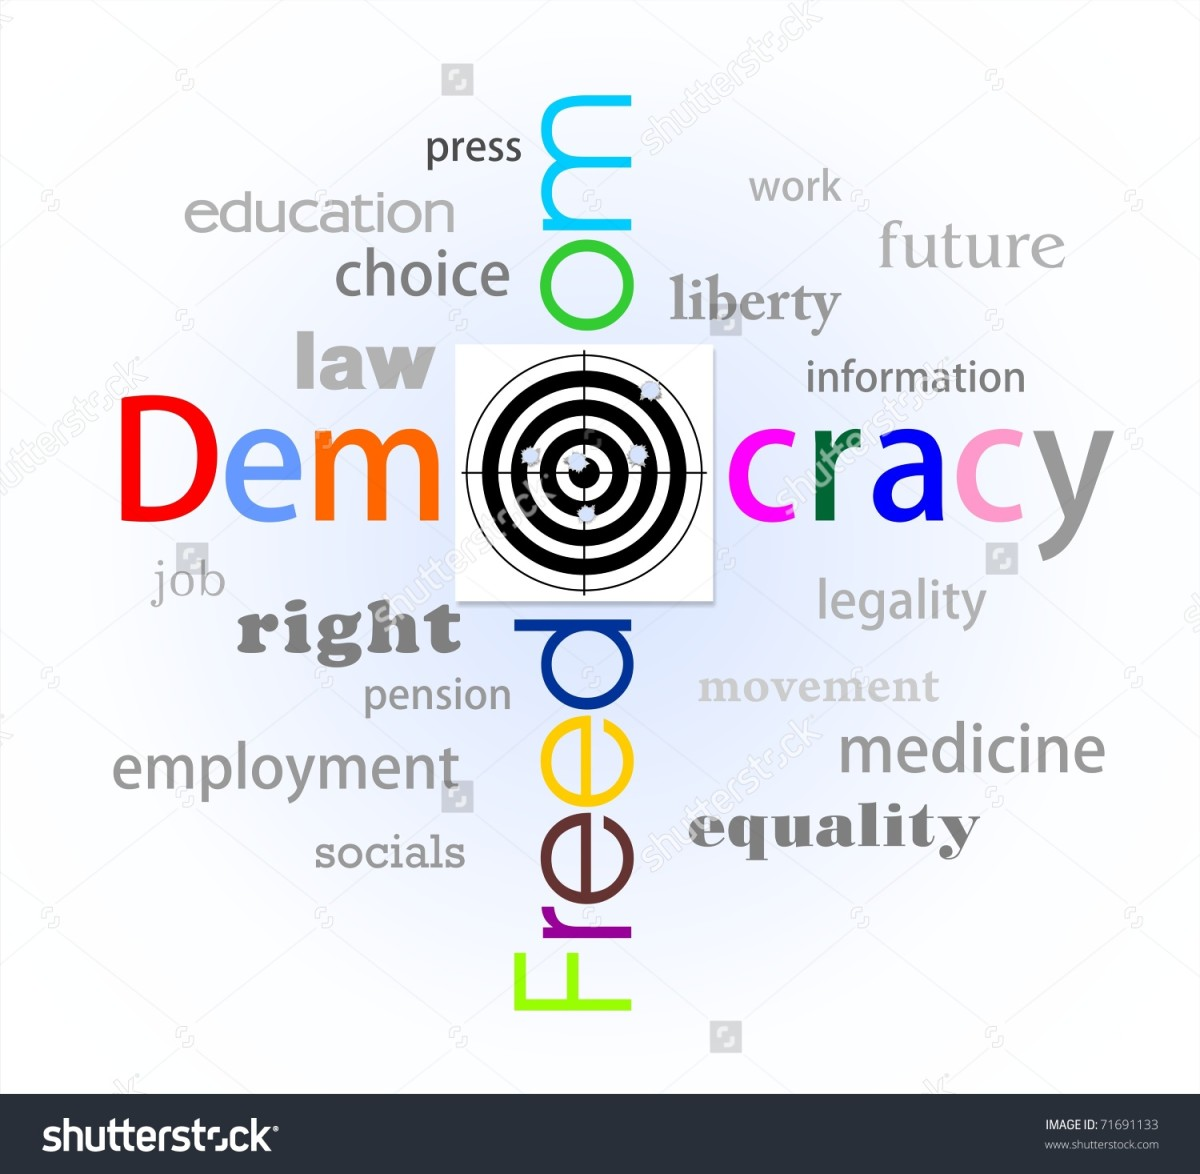 Democracy is not free by definition